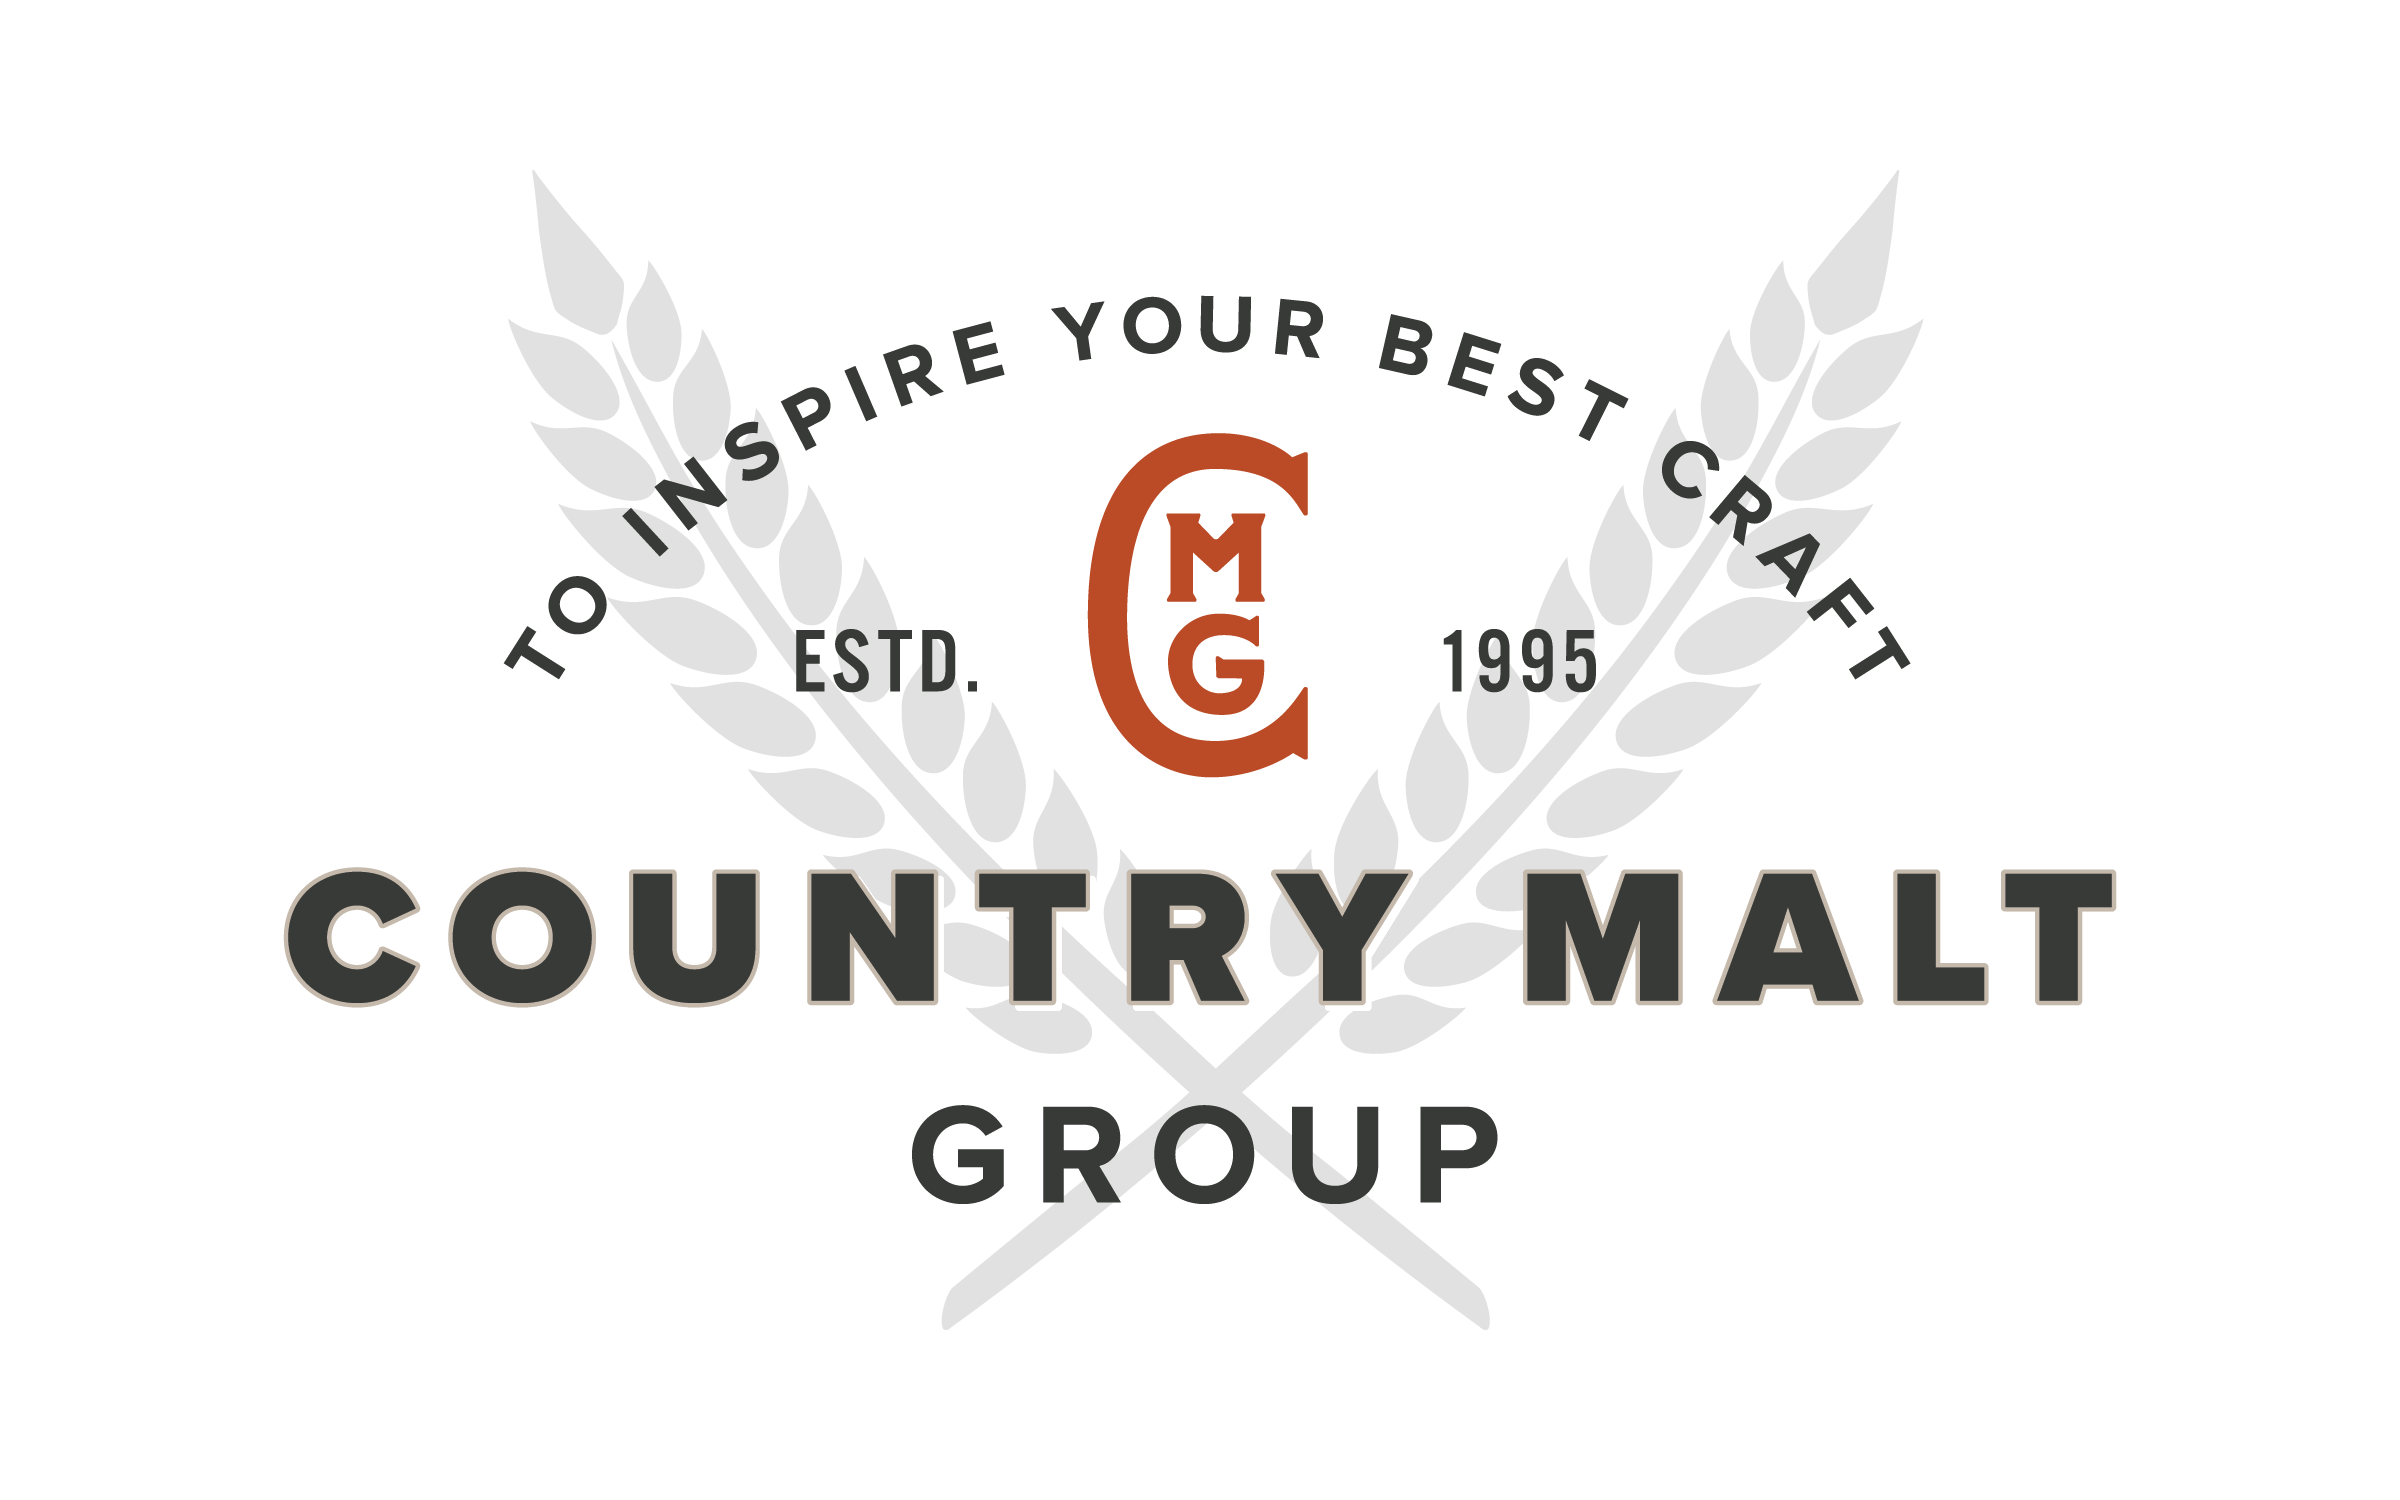 COUNTRY MALT GROUP  With over 200 years of combined industry experience, our dedicated sales and support staff understand the importance of high-quality ingredients, product knowledge and the expertise in making great beer. We want to make sure we are near as many customers as possible which is why our warehouses are strategically located throughout the United States and Canada, and international distribution partners in 11 countries, we are never more than a phone call away from your brewery, brewpub, distillery or cidery. Our mission is to provide the products and services you need while making the process of ordering your ingredients easy. Our fo cus is to do everything we can To Inspire Your BEST Craft!